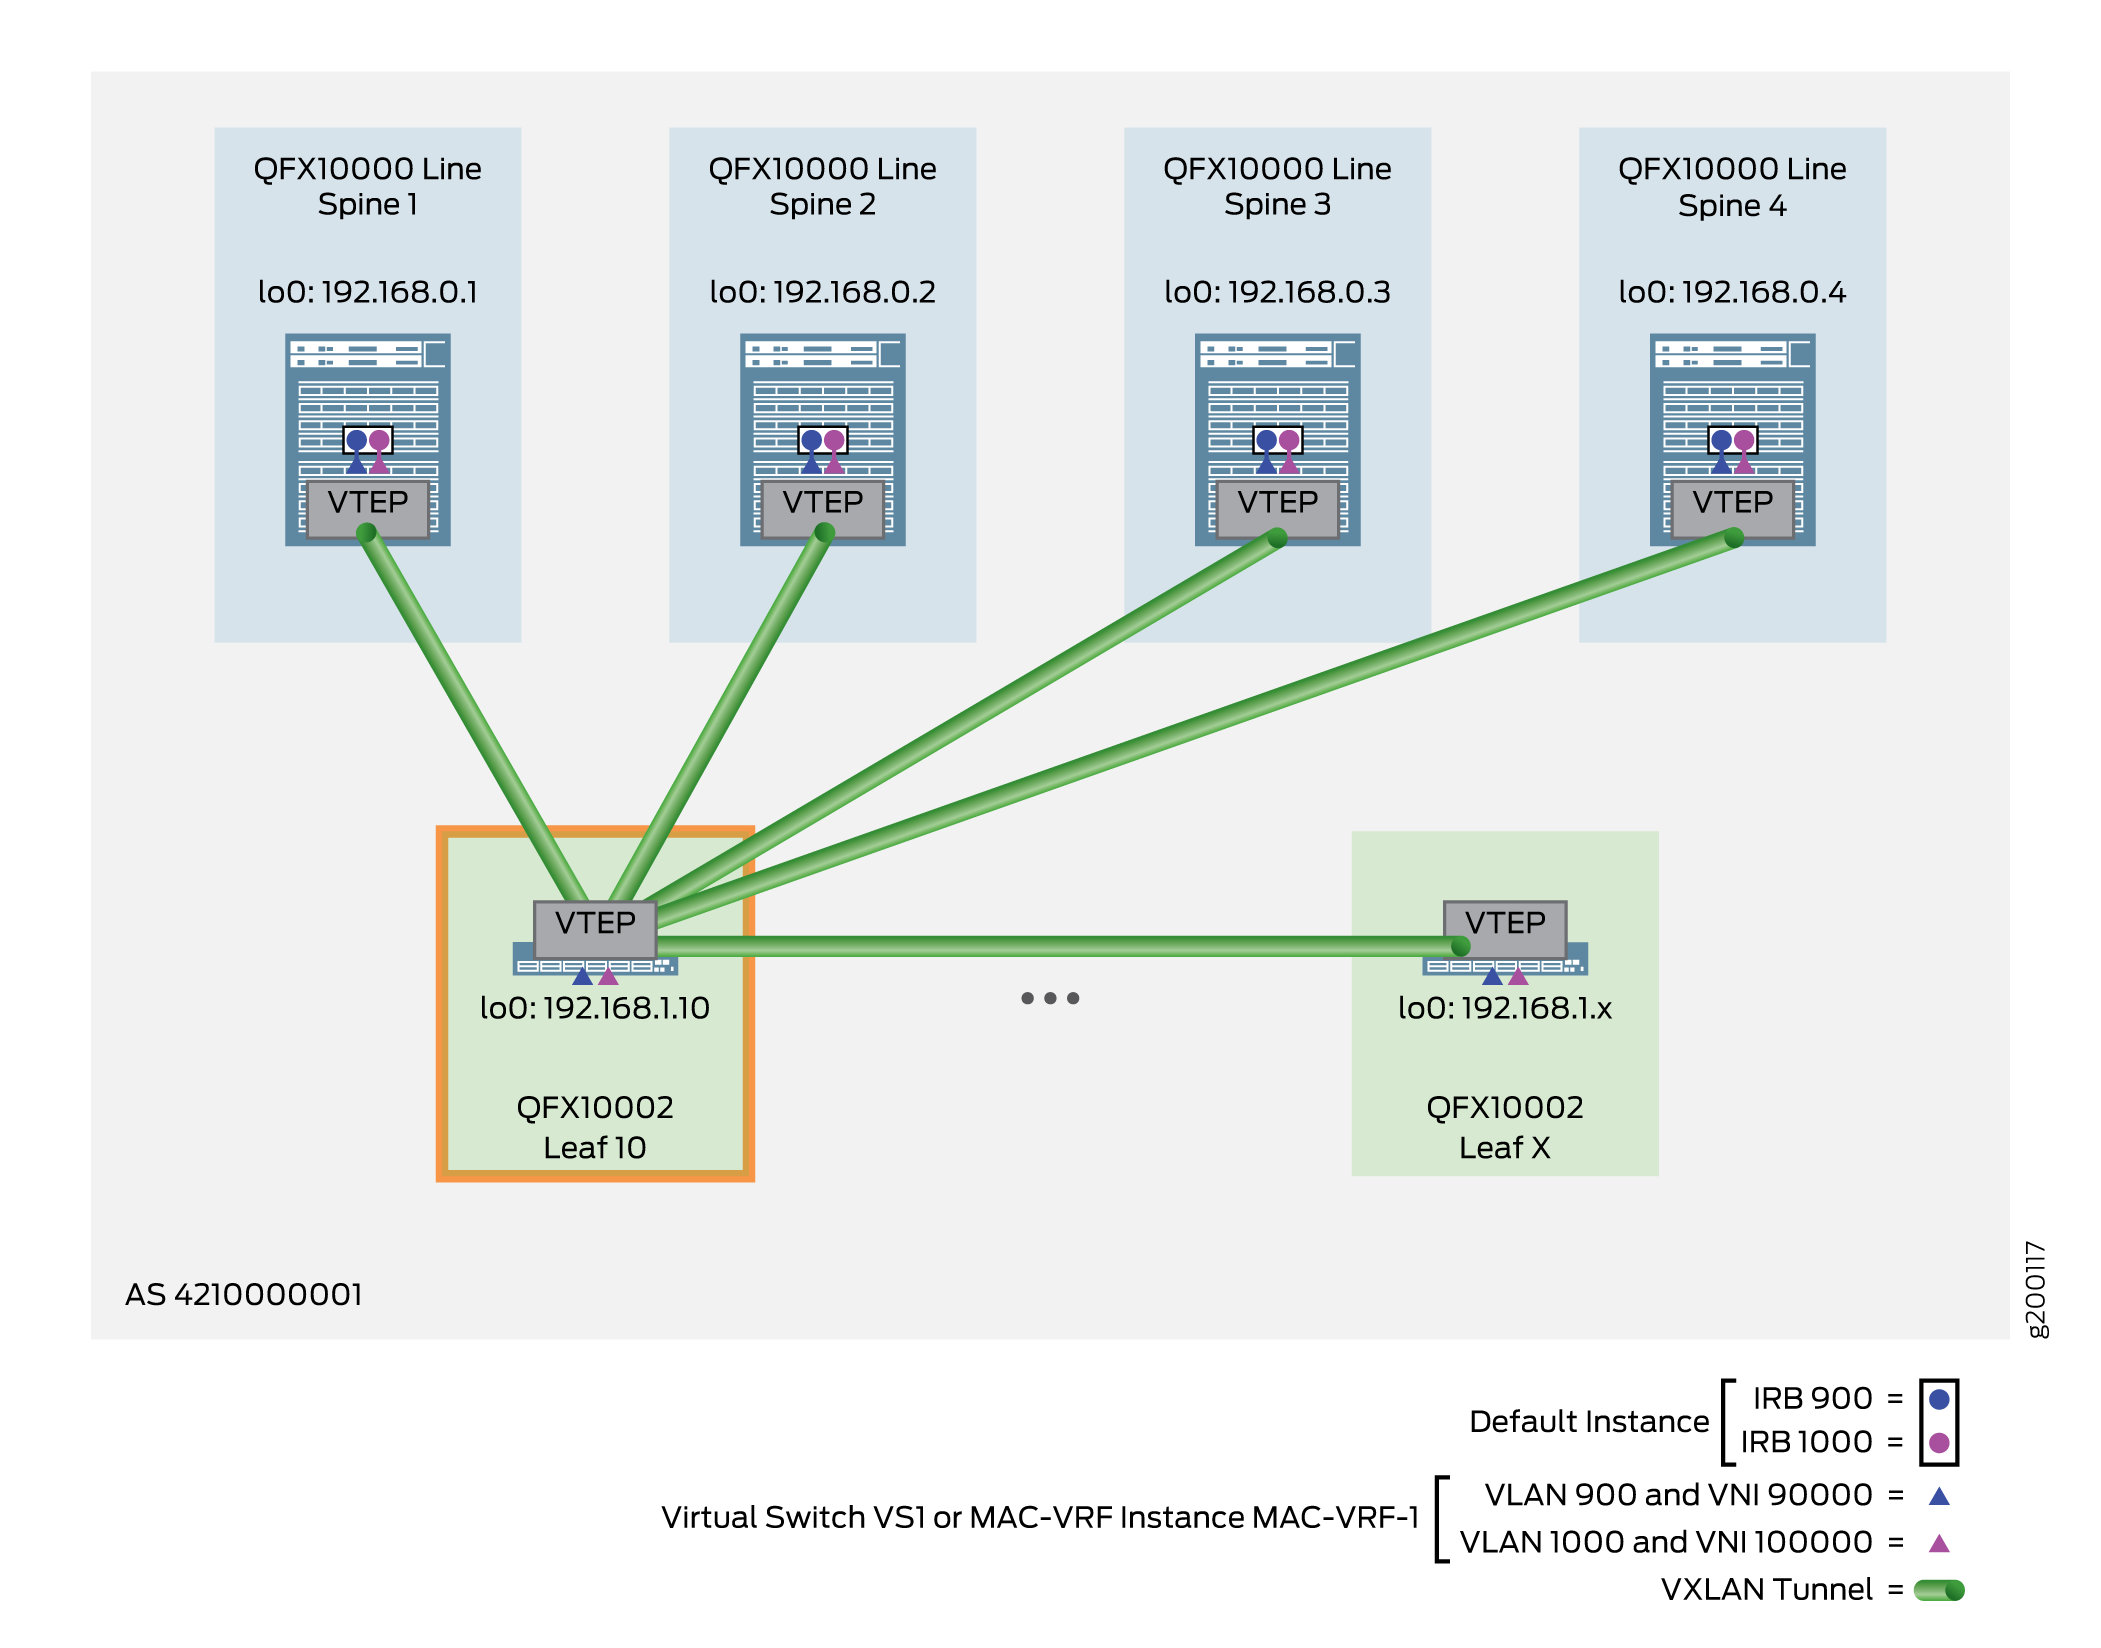 VLAN-Aware Centrally-Routed Bridging Overlay with Virtual Switches – Leaf Device